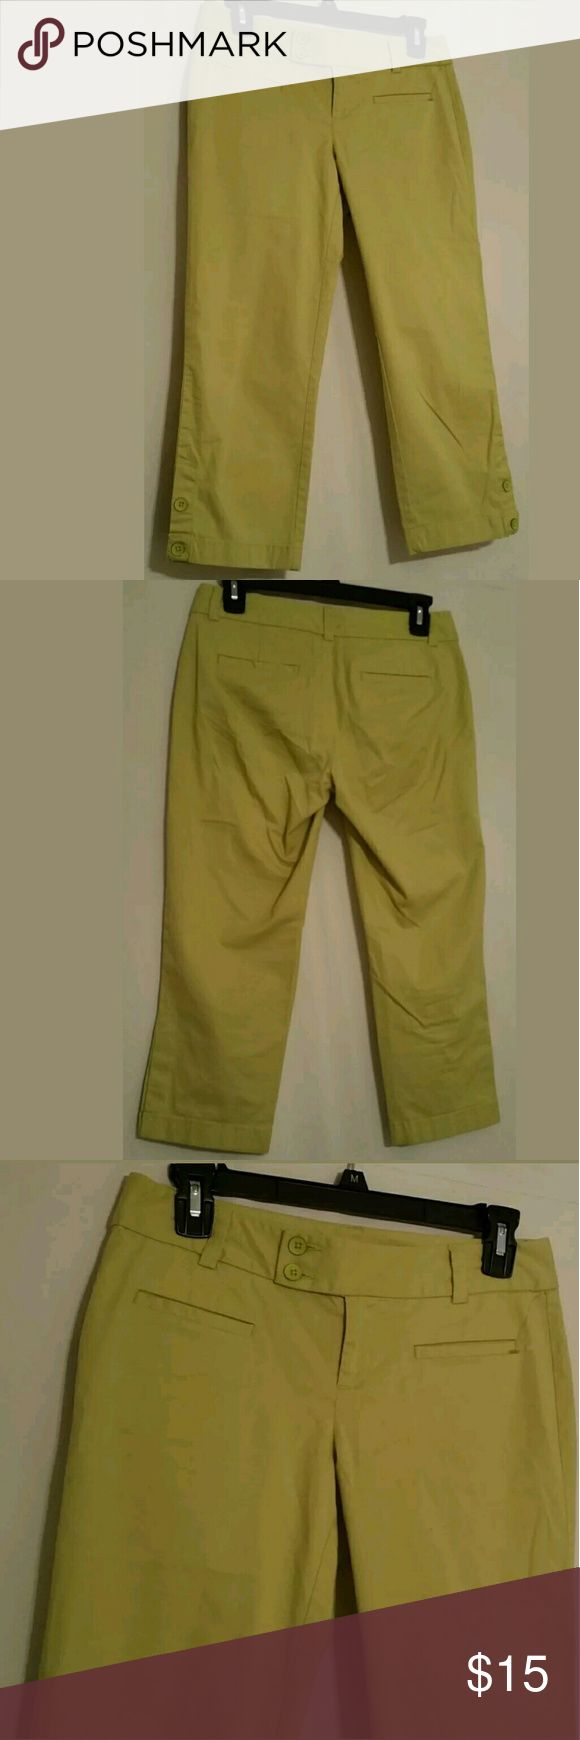 "Ann Taylor Loft  Marisa Fit Women's Capri Pants 0P Ann Taylor Loft  Marisa Fit Women's Cropped Pants Capri Size 0P Cotton Stretch  Excellent condition in neon green perfect for spring & summer size 0P, double buttons on waist & on legs  Measurements  Waist : 28"" Front Rise : 9"" Back Rise : 11"" Hips : 34"" Inseam :  21"" Length : 28""  Thanks for stopping by! LOFT Pants Ankle & Cropped"